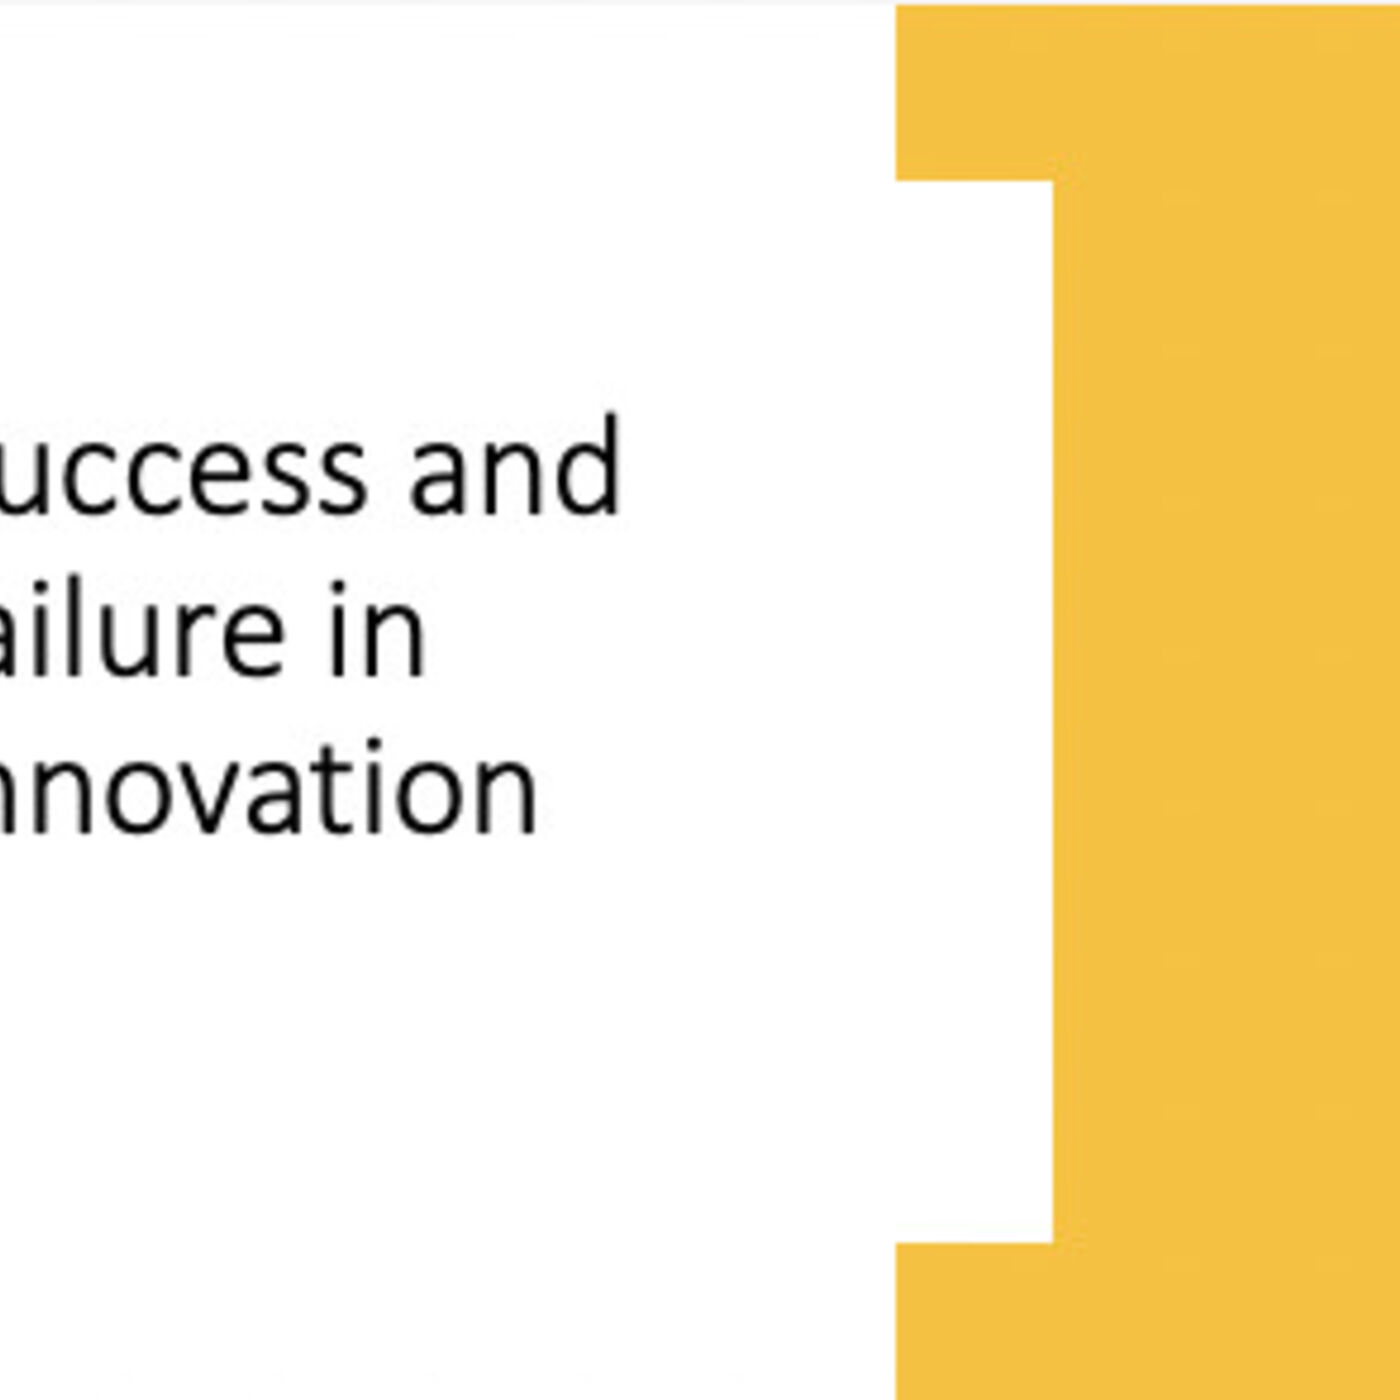 Success and failure in innovation